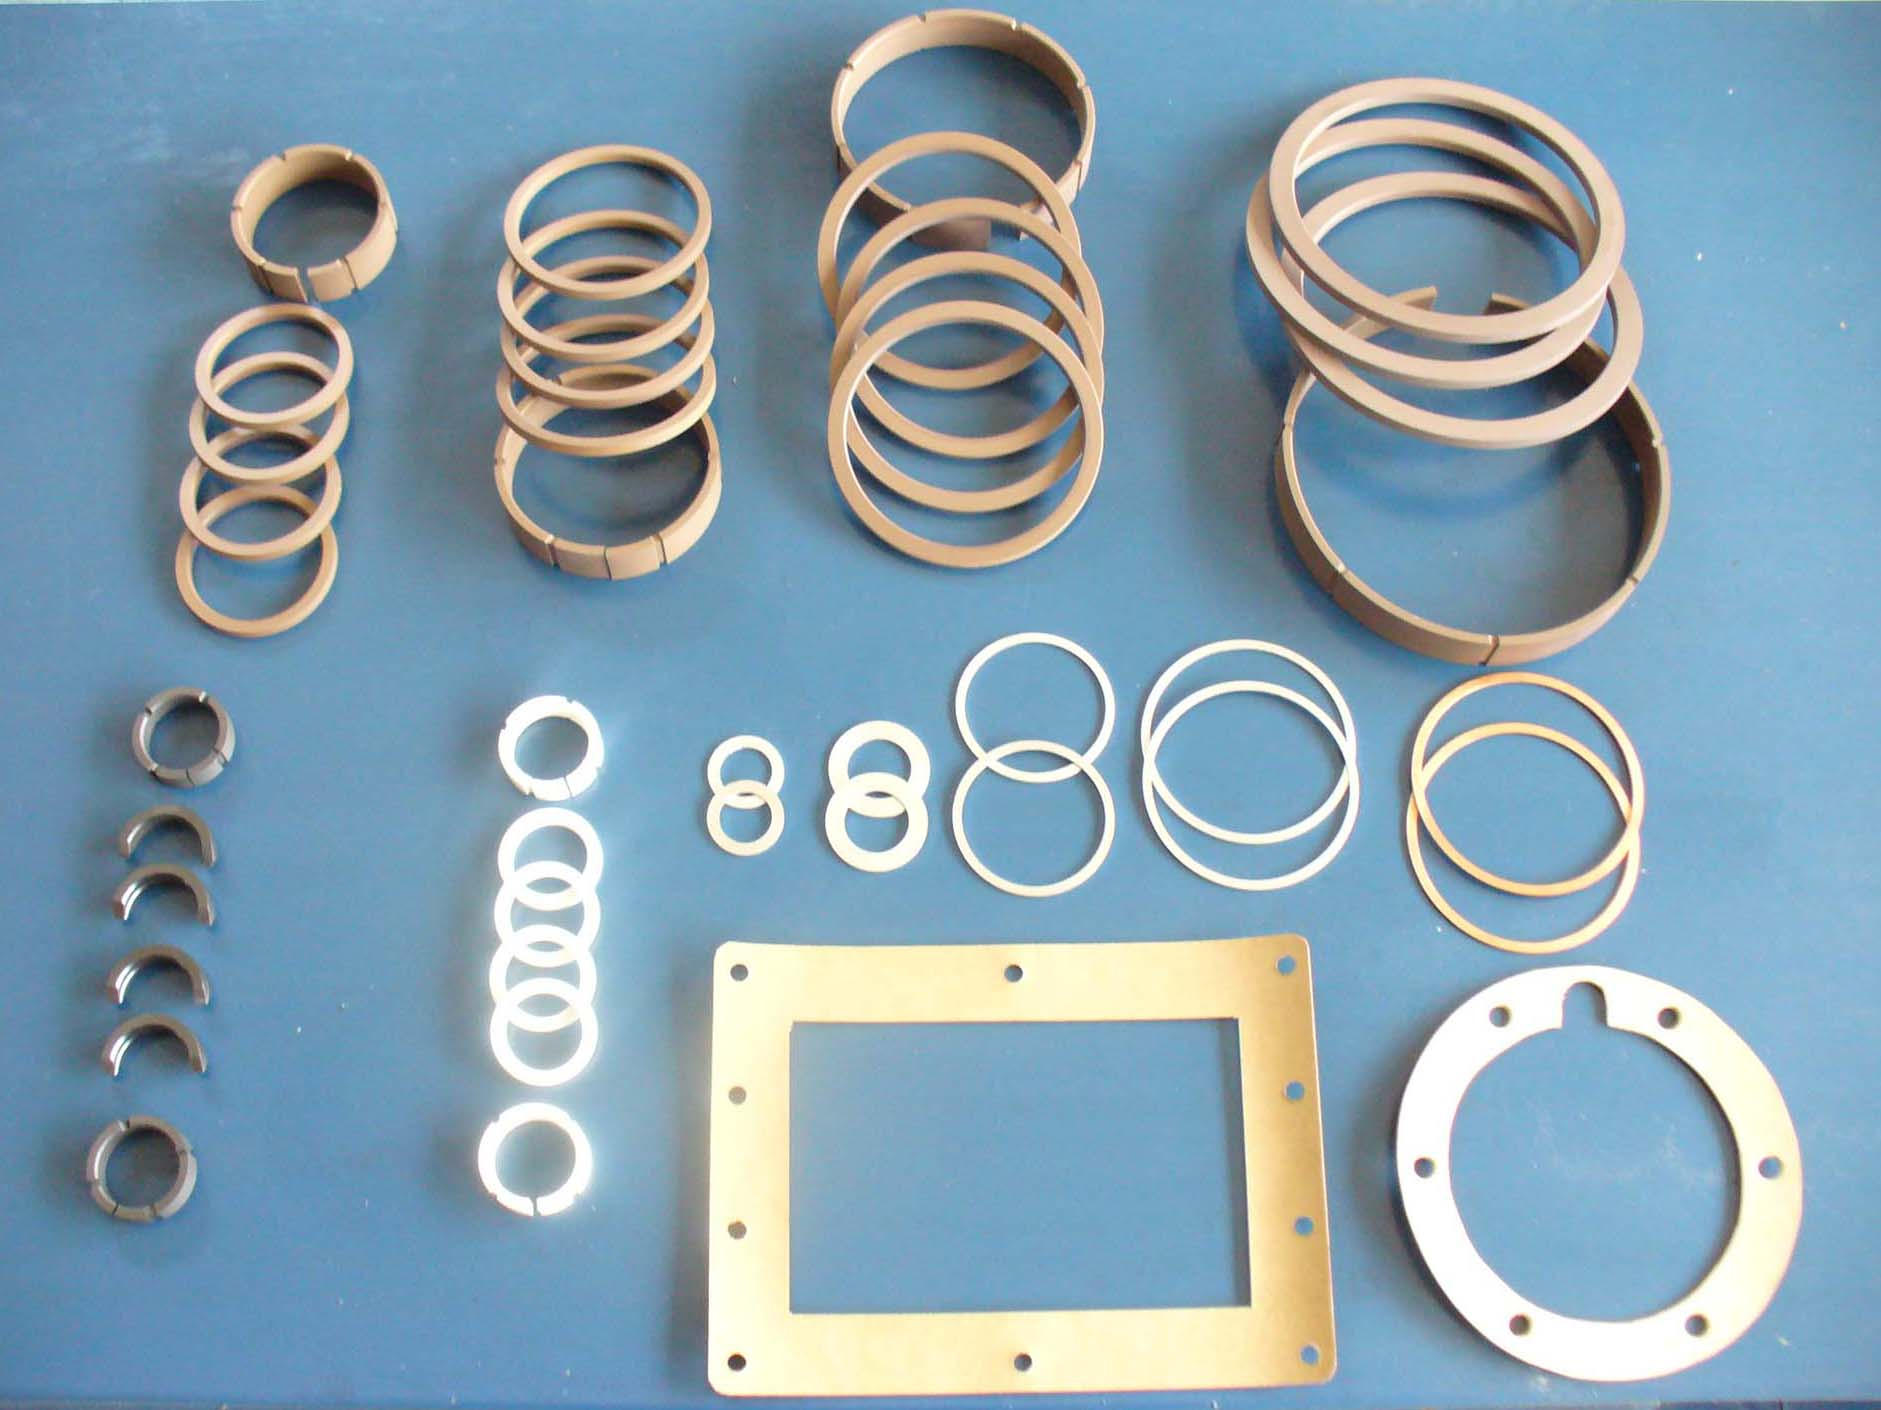 15 AROS Y JUNTAS -   RINGS AND GASKETS